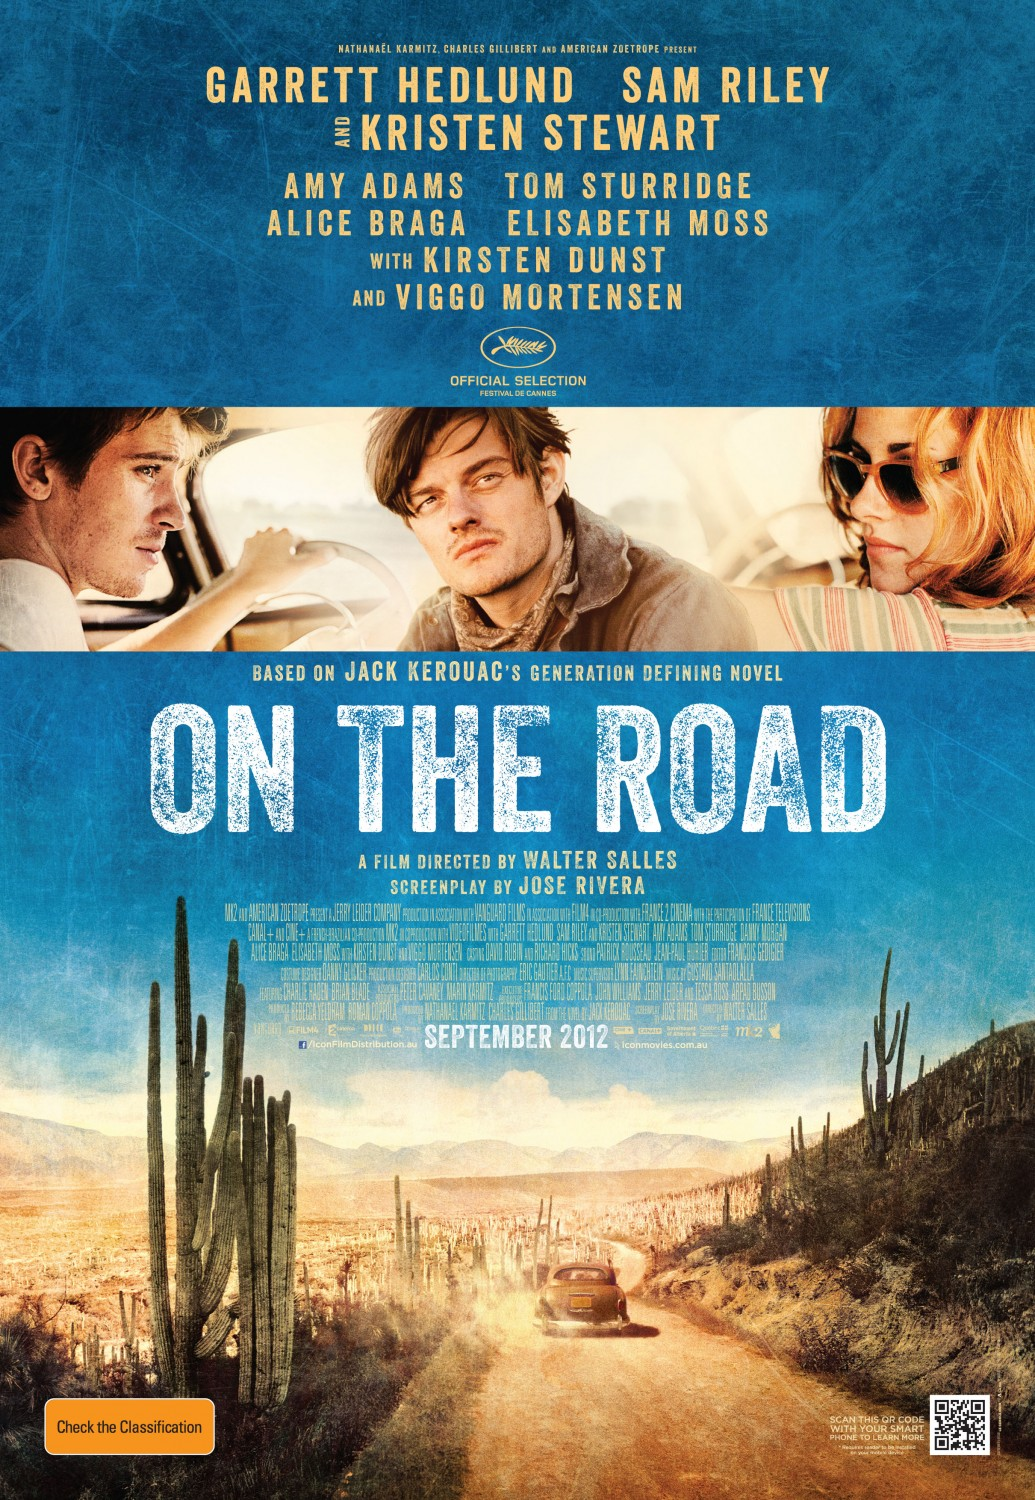 on_the_road___official_trailer_2012_[hd]_kristen_stewart_mov_mpeg2video_21032013_1640_480p_wmp4